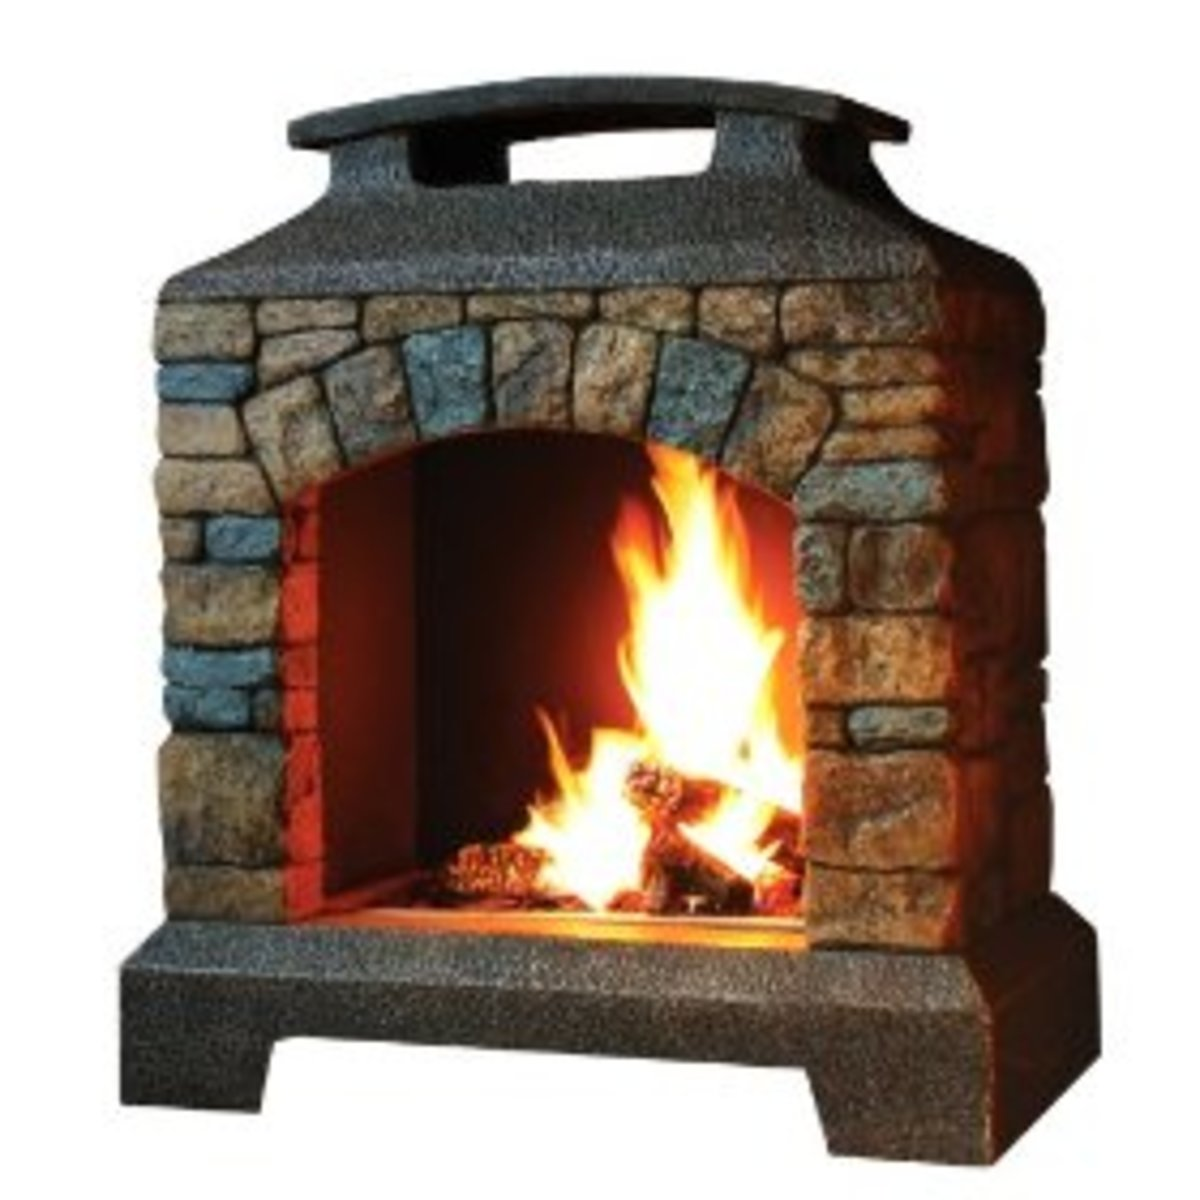 Stonegate Propane Fireplace - Best Propane Fireplace For The Home Hubpages